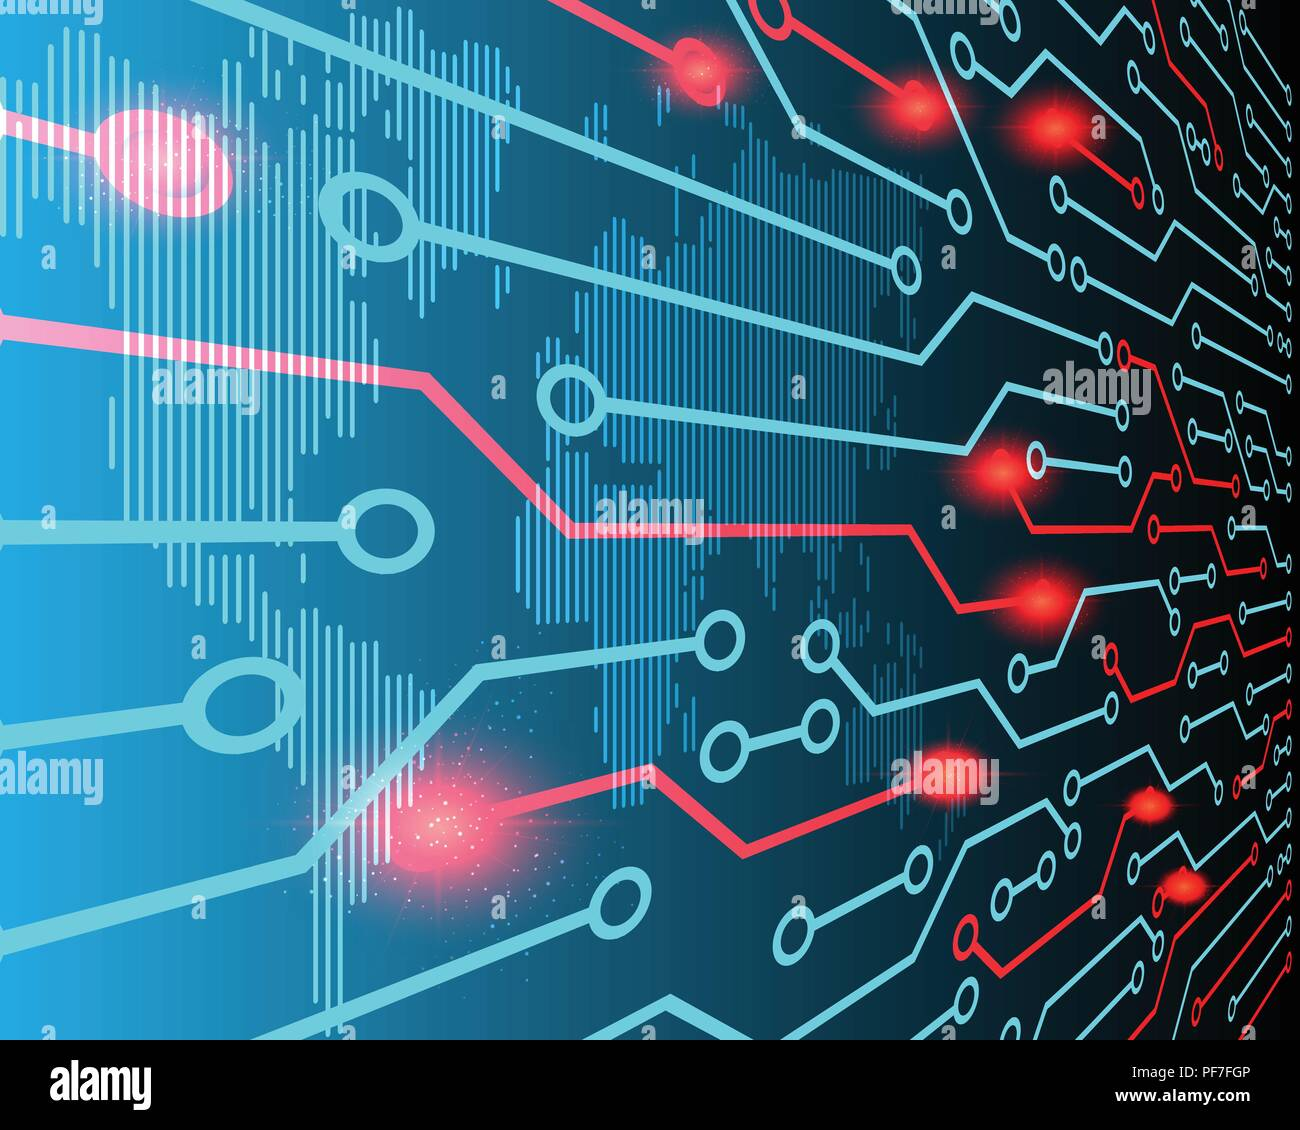 World map line perspective view cyber attack by hacker concept world map line perspective view cyber attack by hacker concept background vector illustration eps10 gumiabroncs Images